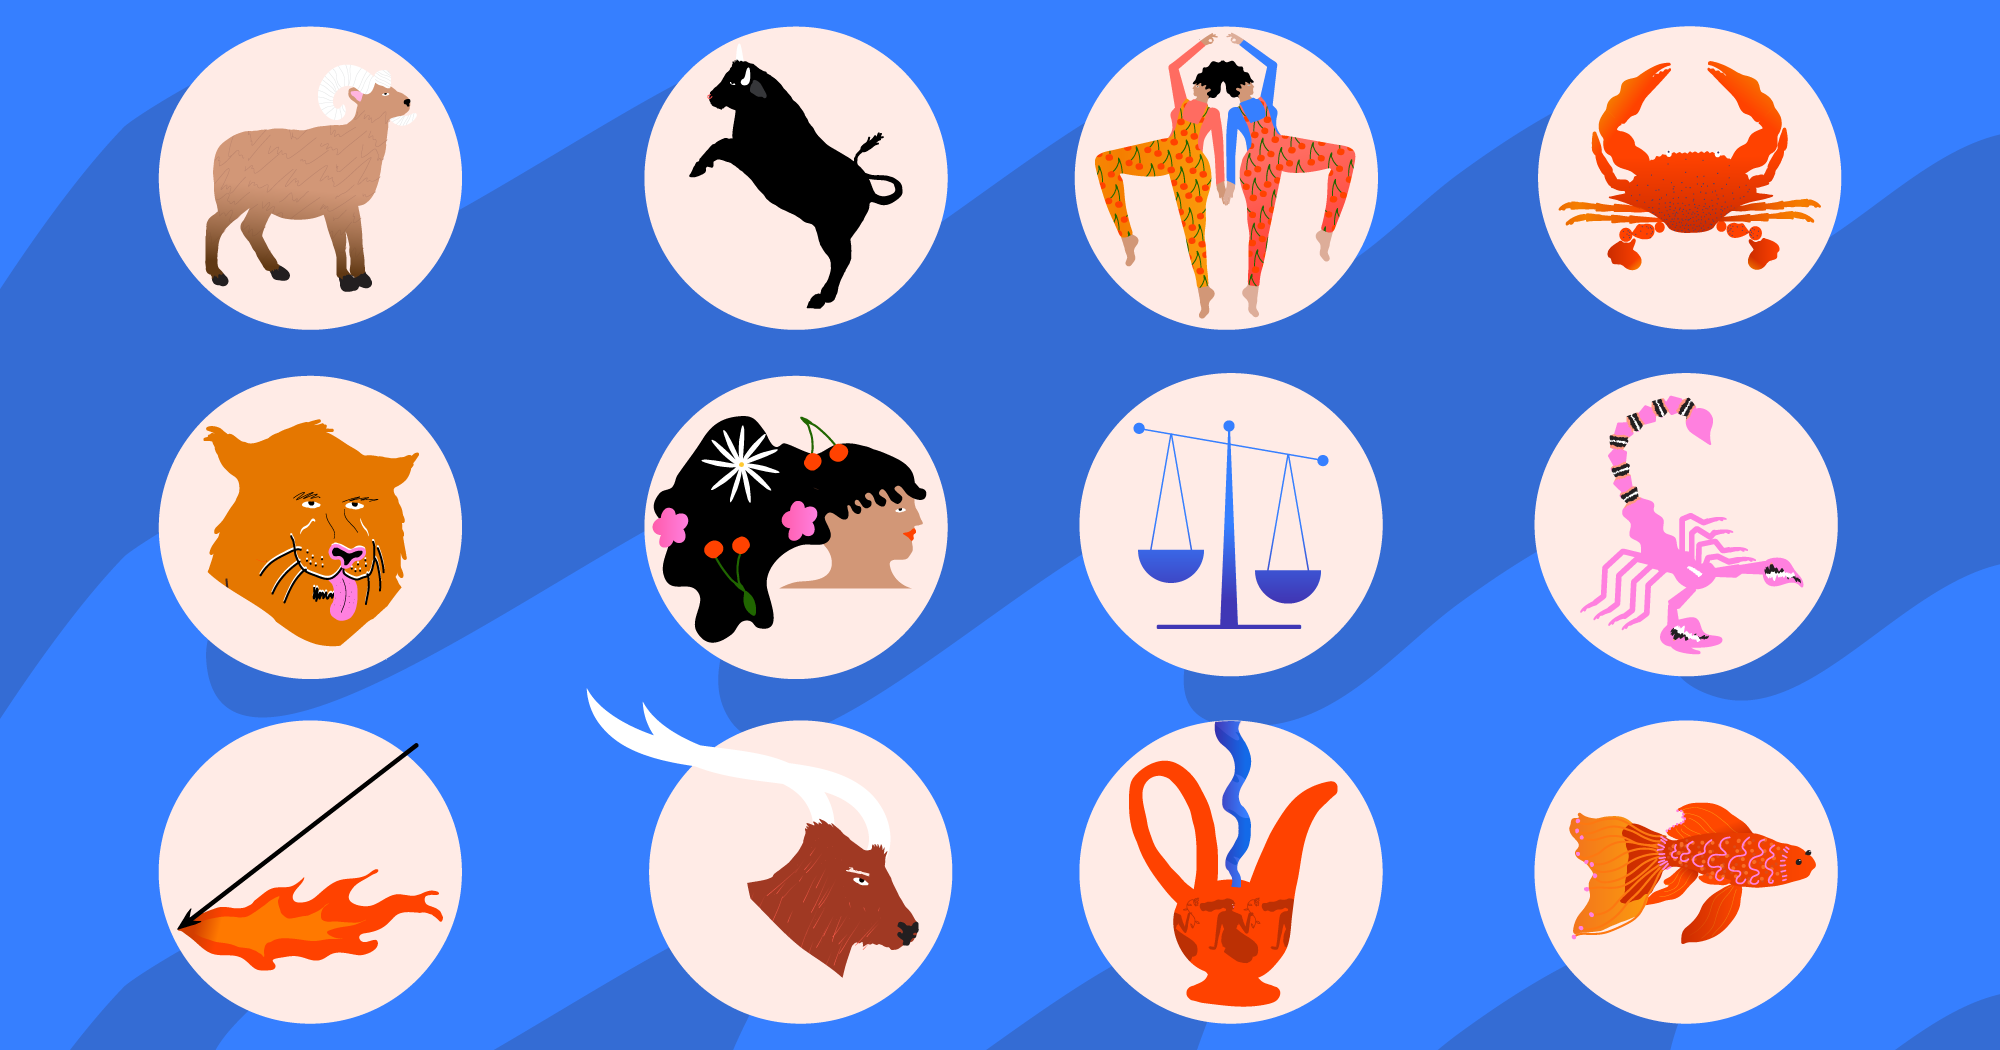 58fd38b7 2018 Horoscope For The Year Ahead, All Zodiac Signs